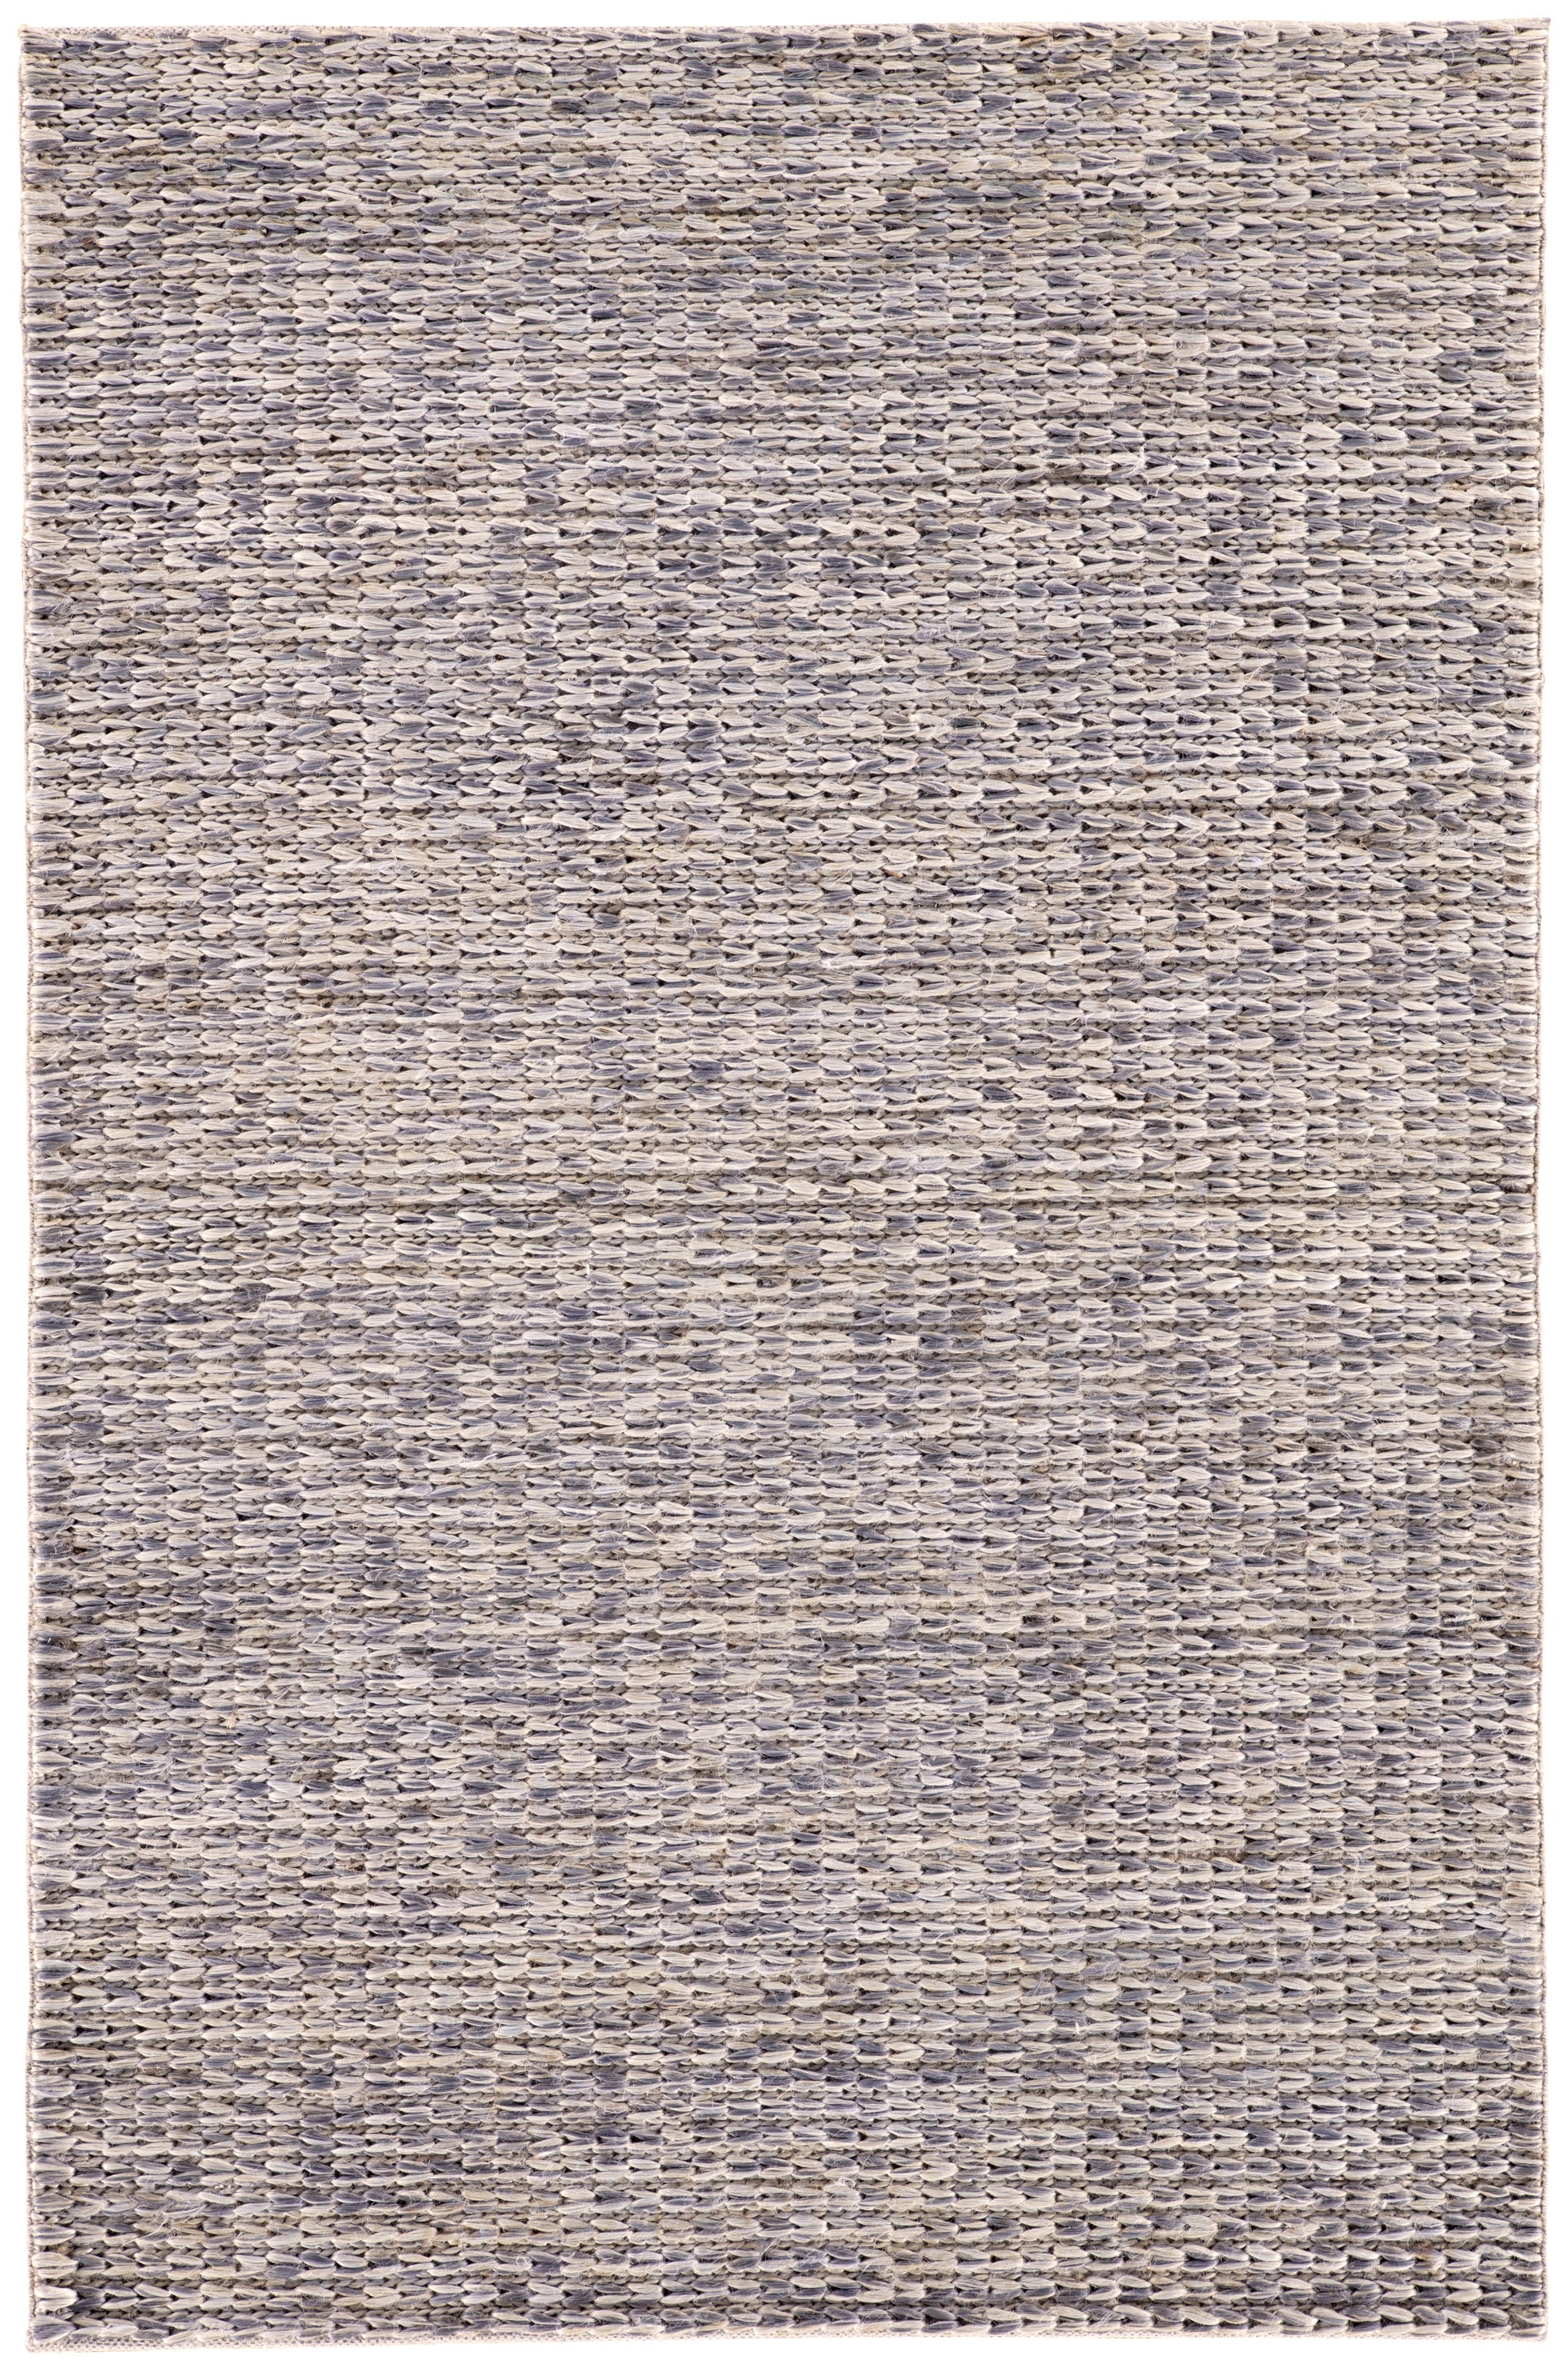 Rectangle Blue Solid Hand Woven Jute & Natural Fibers Casual recommended for Bedroom, Bathroom, Dining Room, Office, Hallway, Living Room